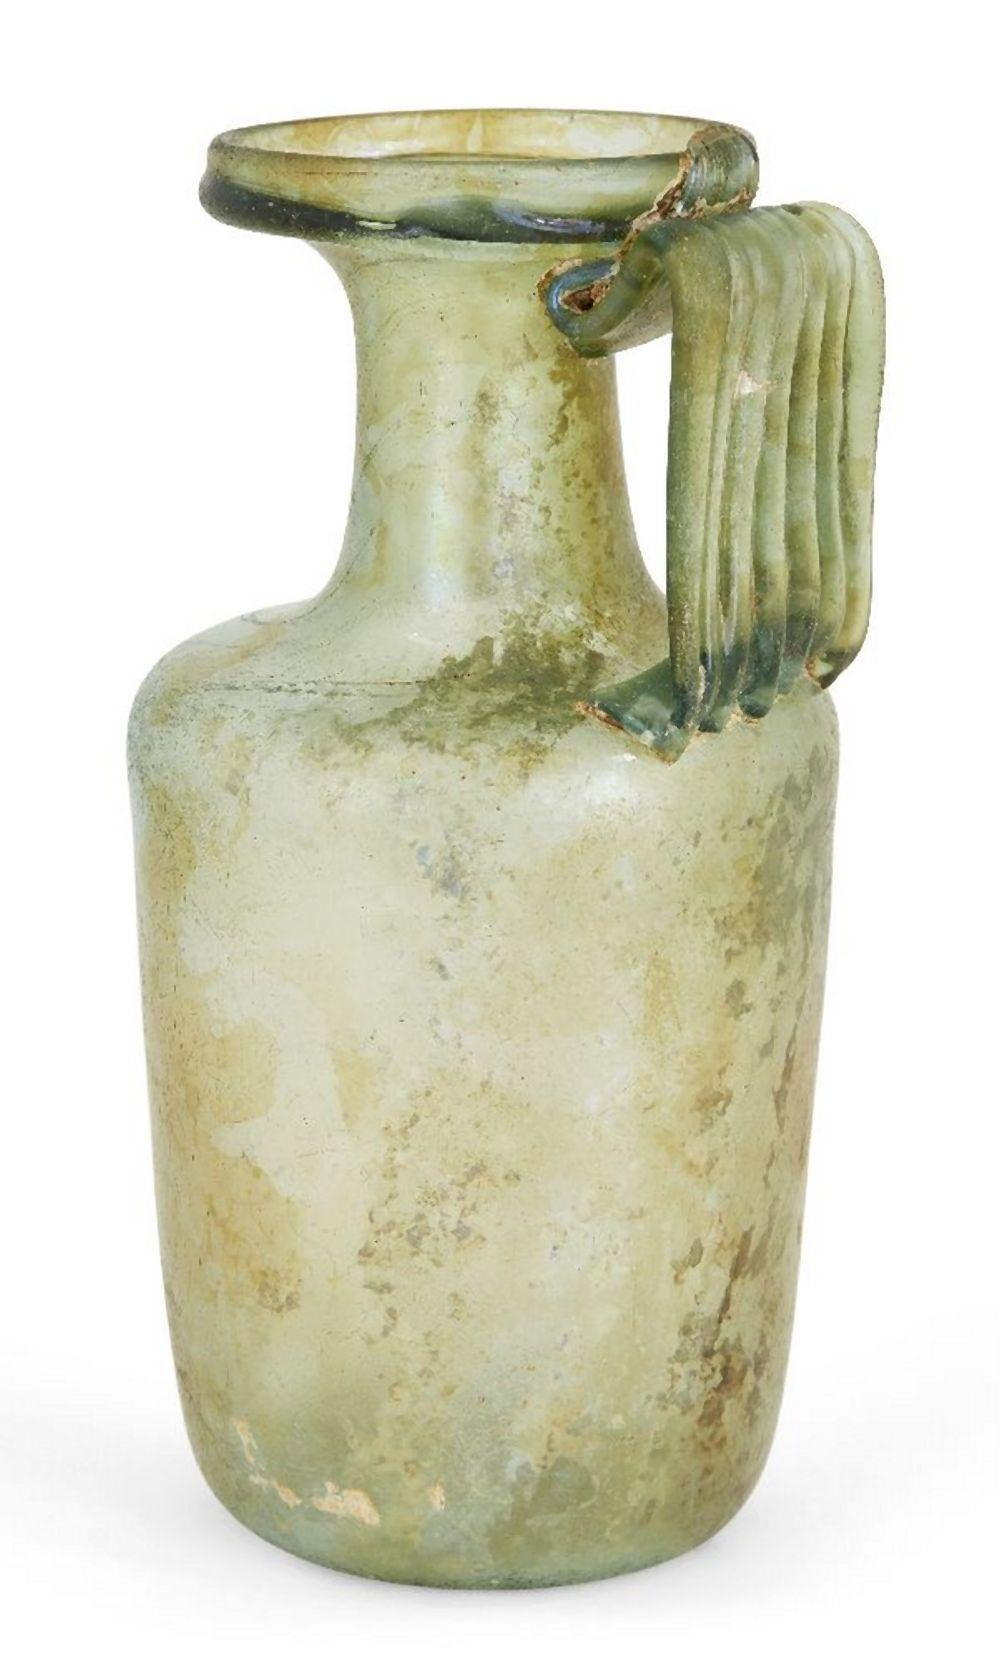 A Roman green glass flask, 1st-3rd century AD, on an indented base, rounded